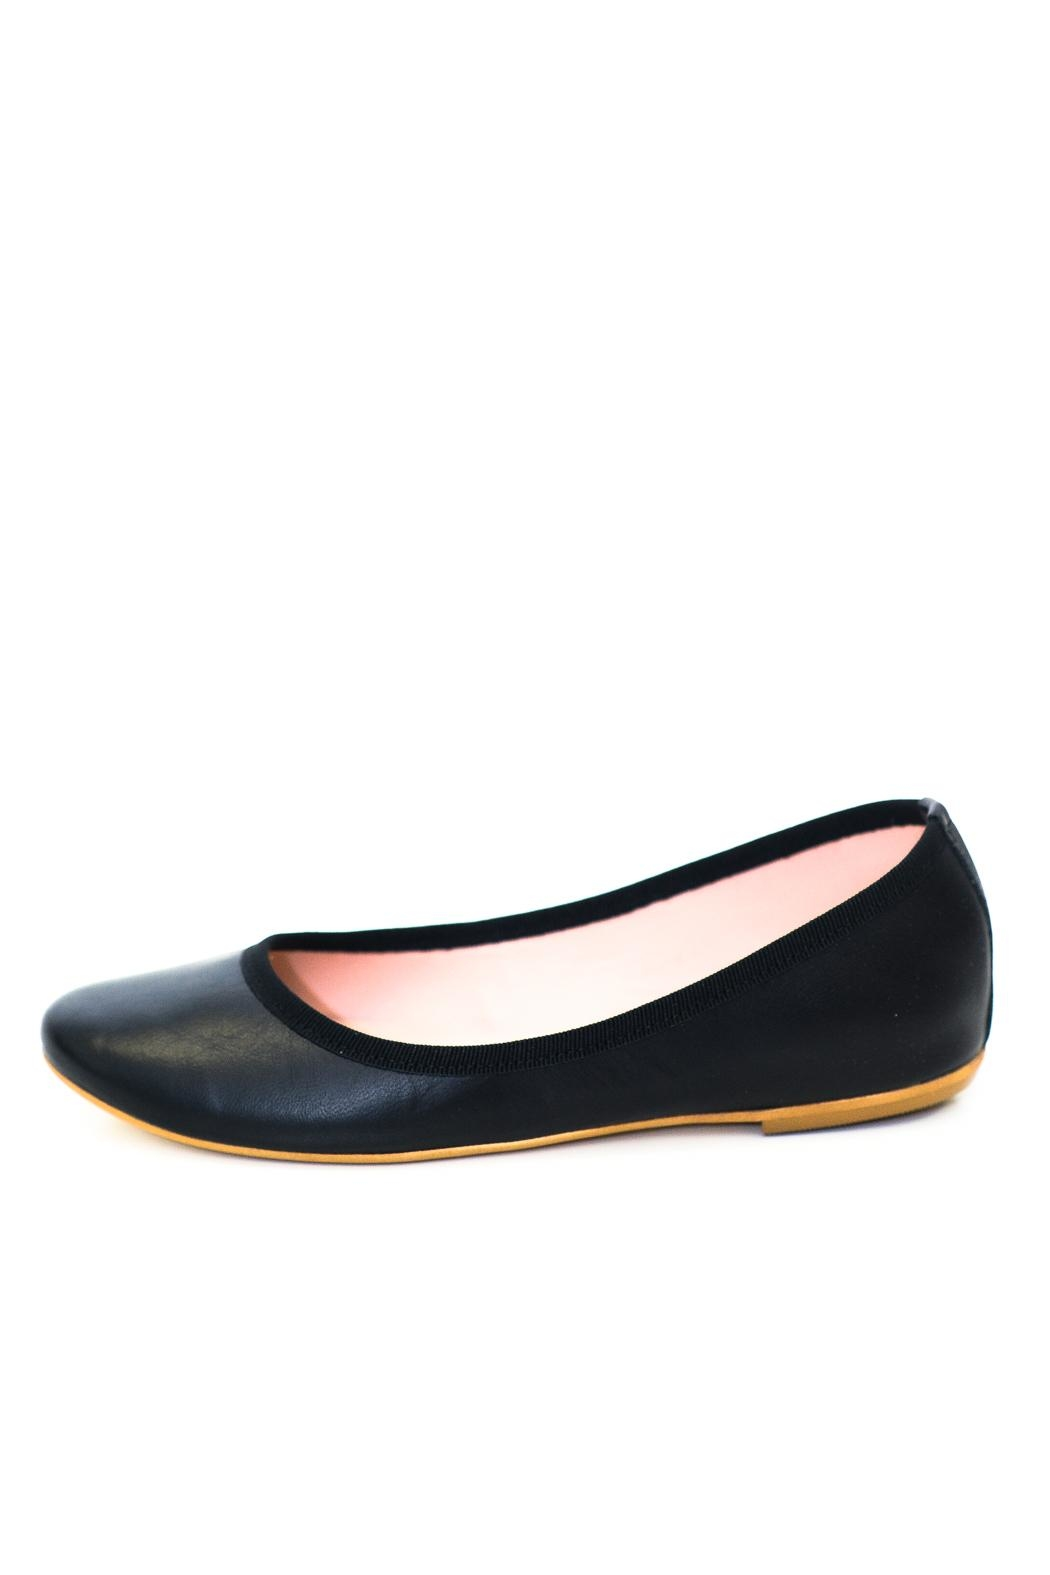 993 Black Wedge Ballerina - Front Cropped Image